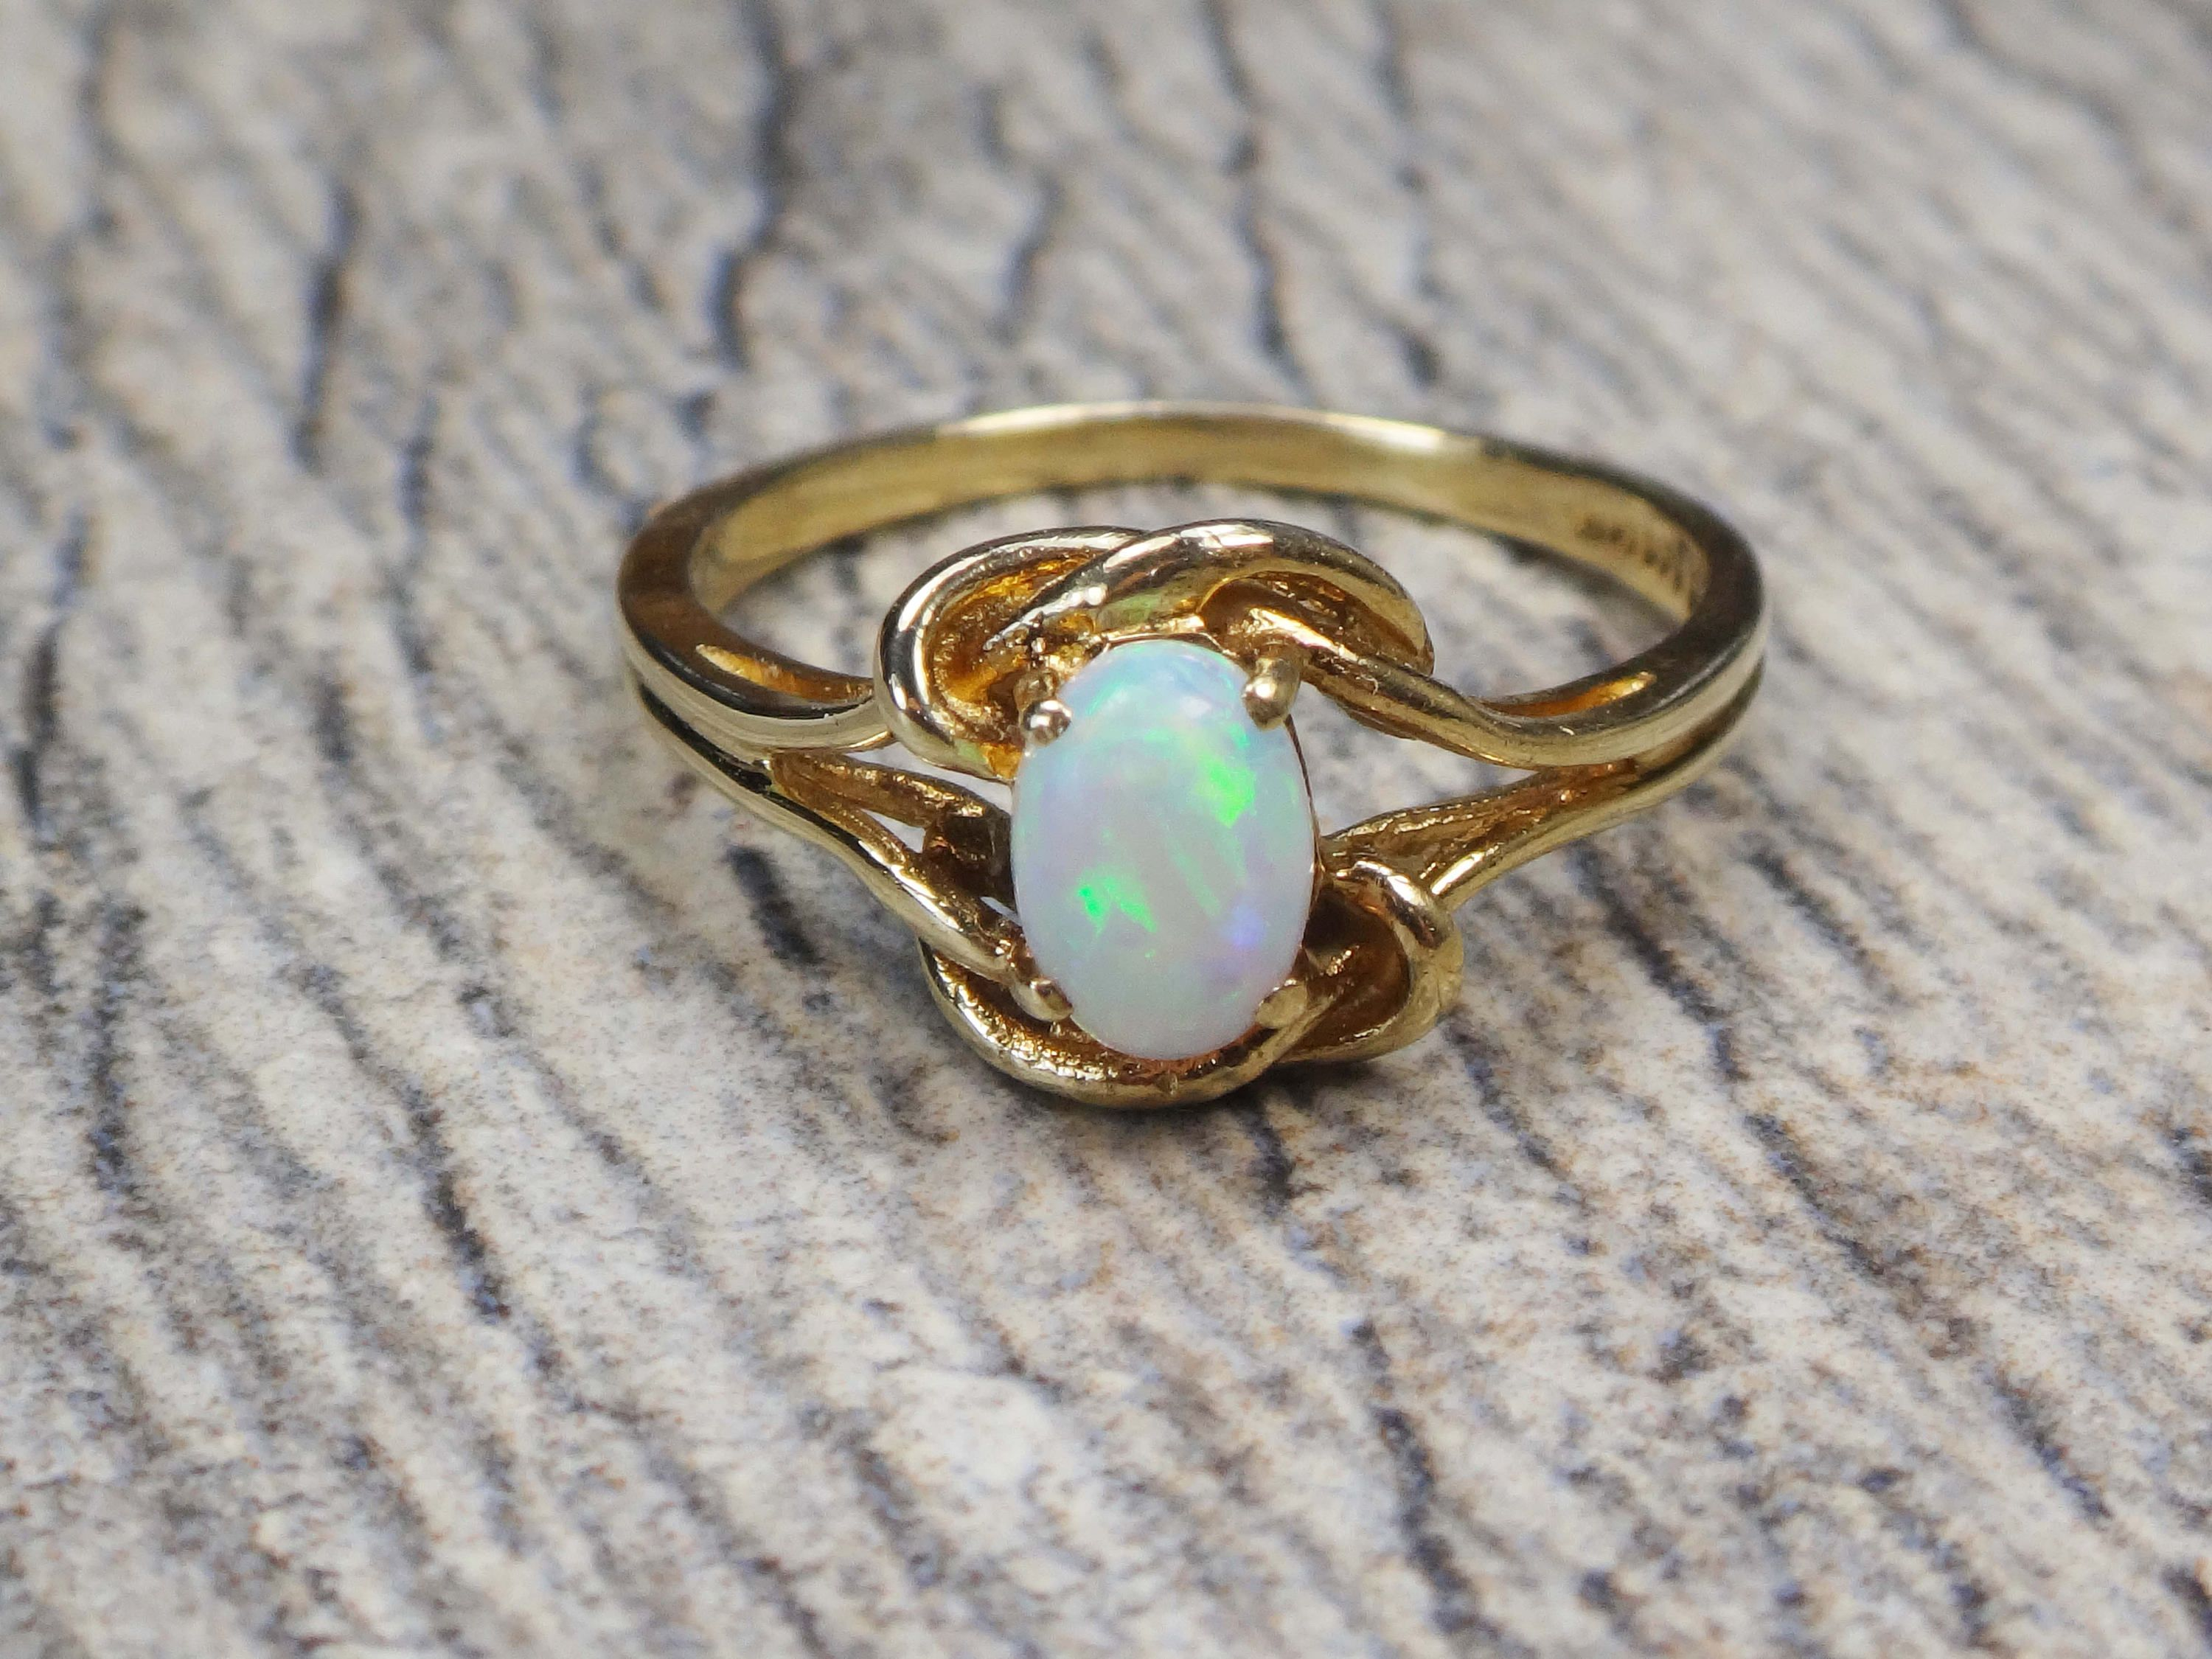 Vintage 10k Gold Opal Ring Opal Twist Ring 10k Yellow Gold Etsy Opal Ring Gold Opal Rings Natural Opal Ring